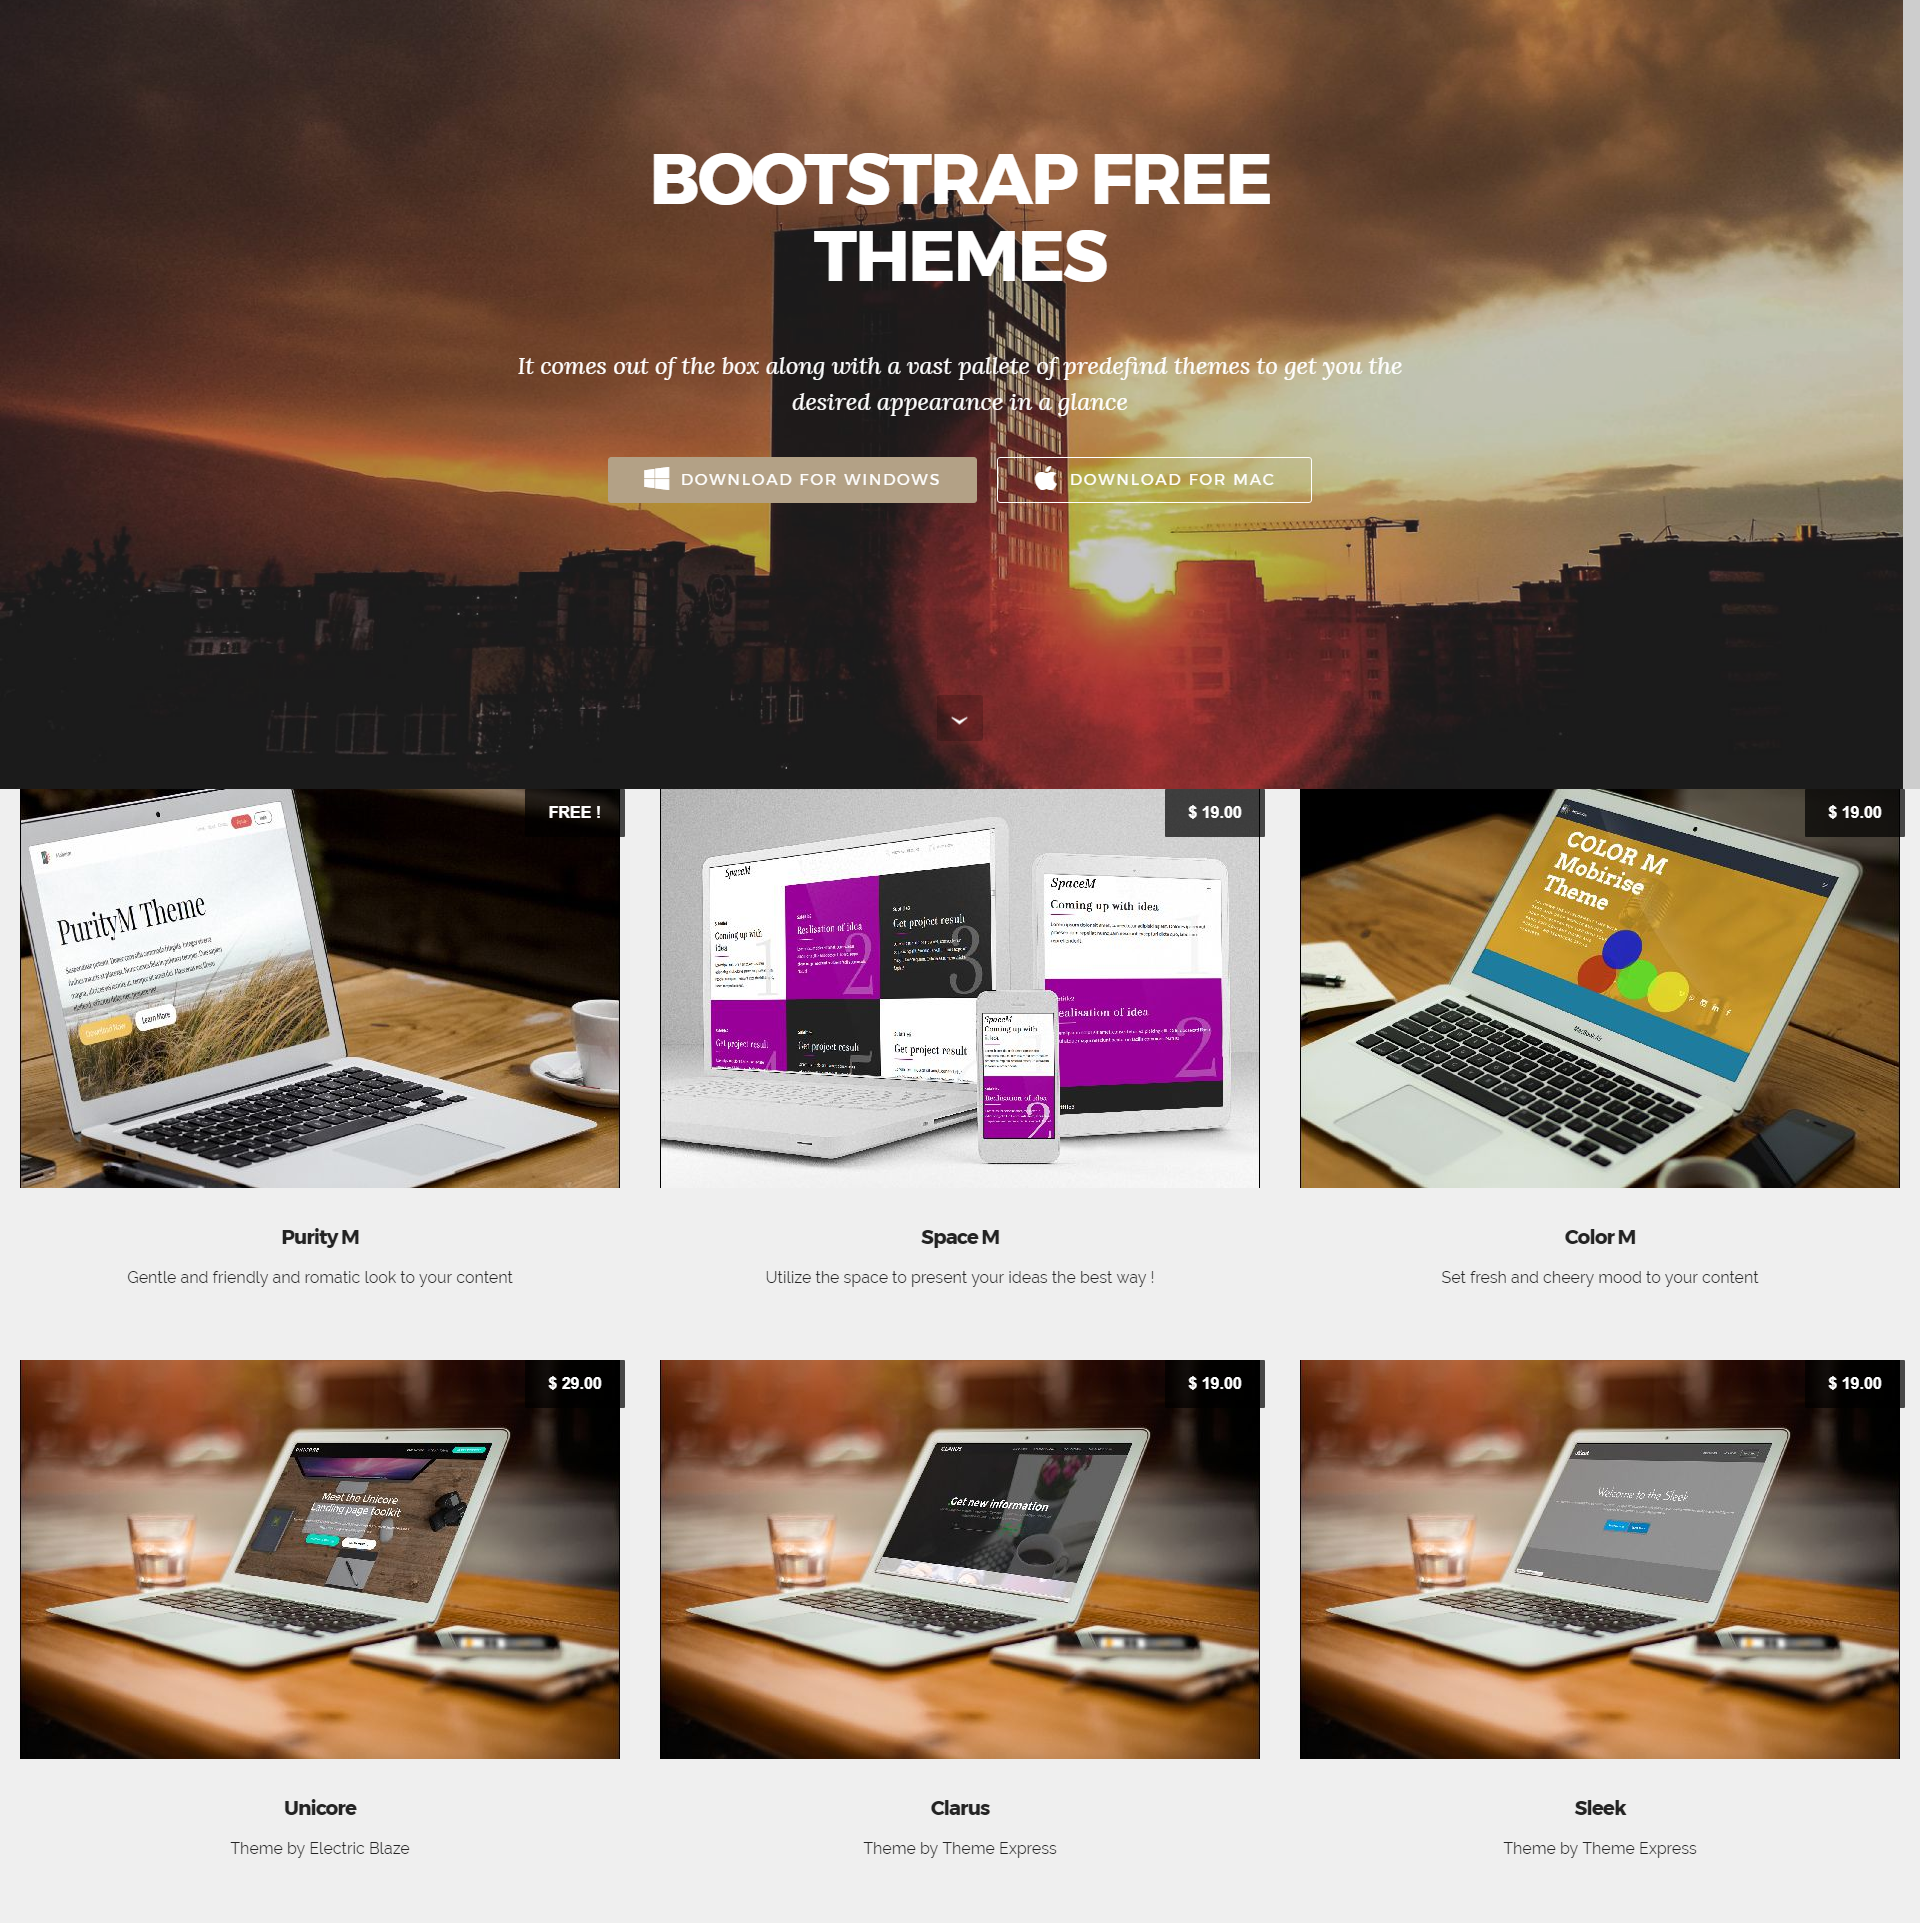 Free Bootstrap Mobile-friendly Themes